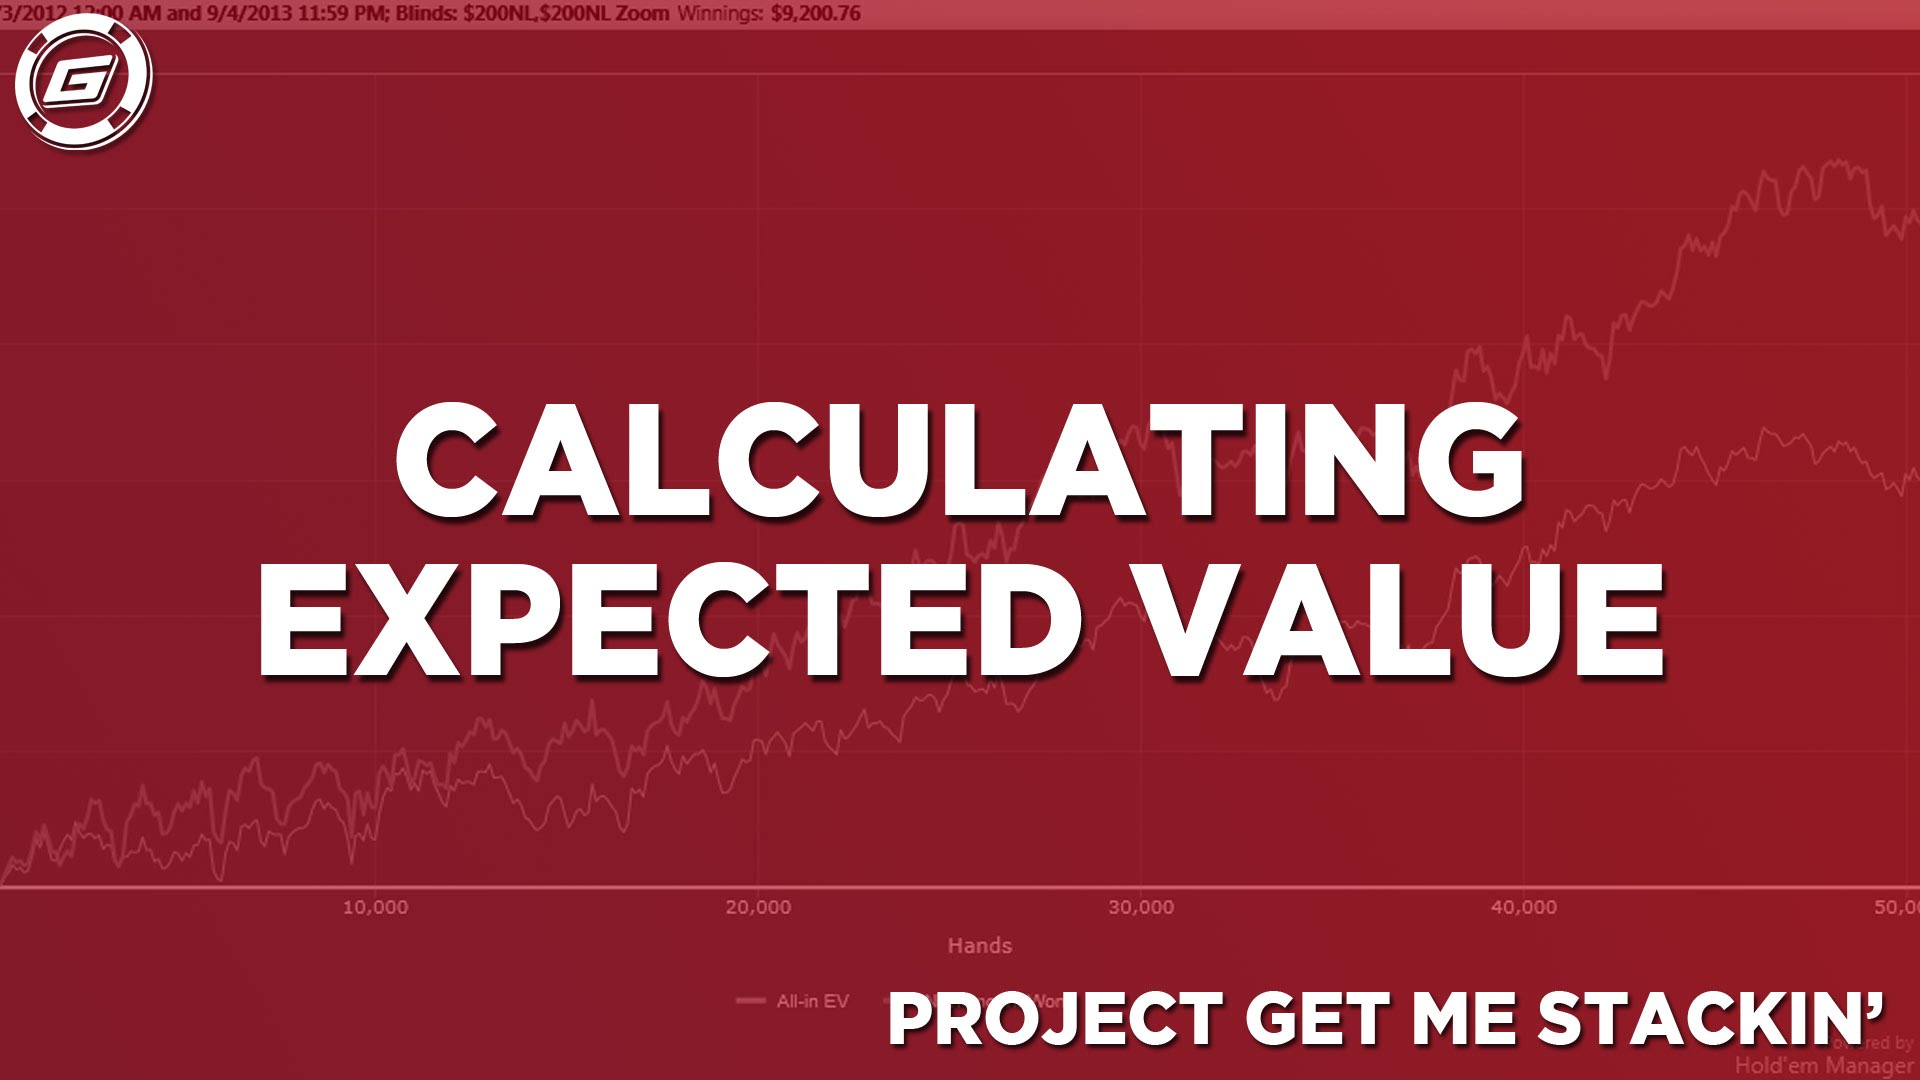 How To Calculate Expected Value - LESSON #3